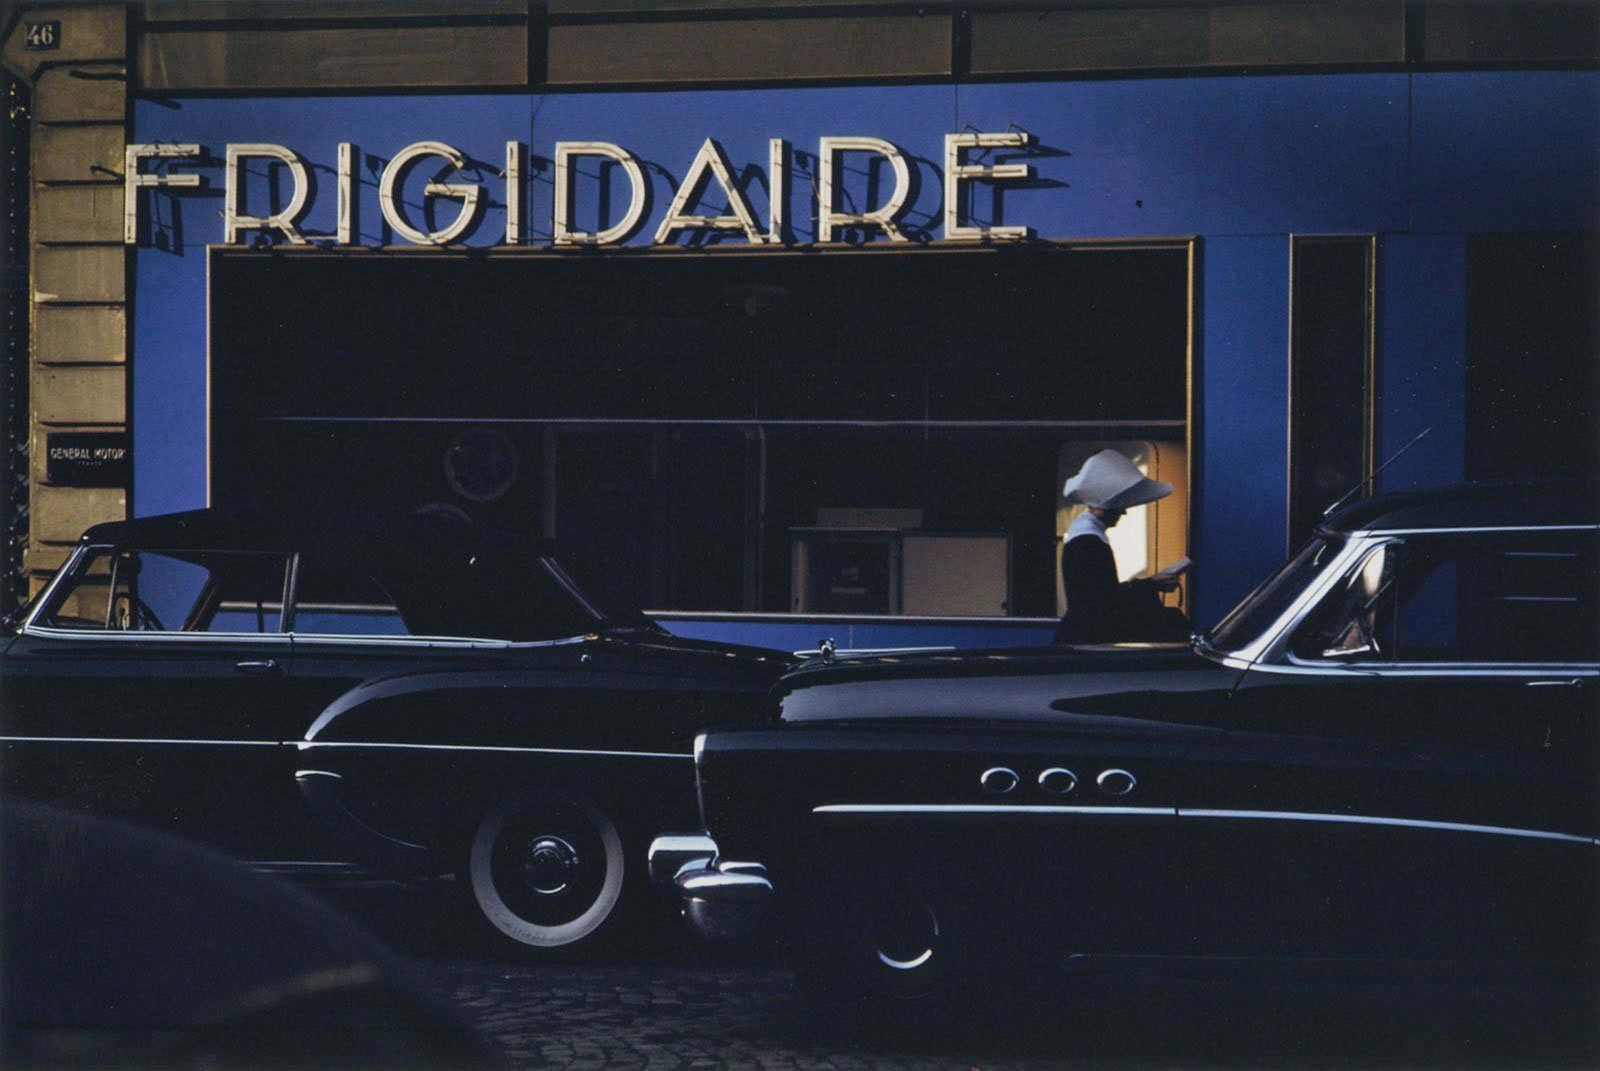 Frigidaire, Paris, 1954 Photography by Ernst Haas